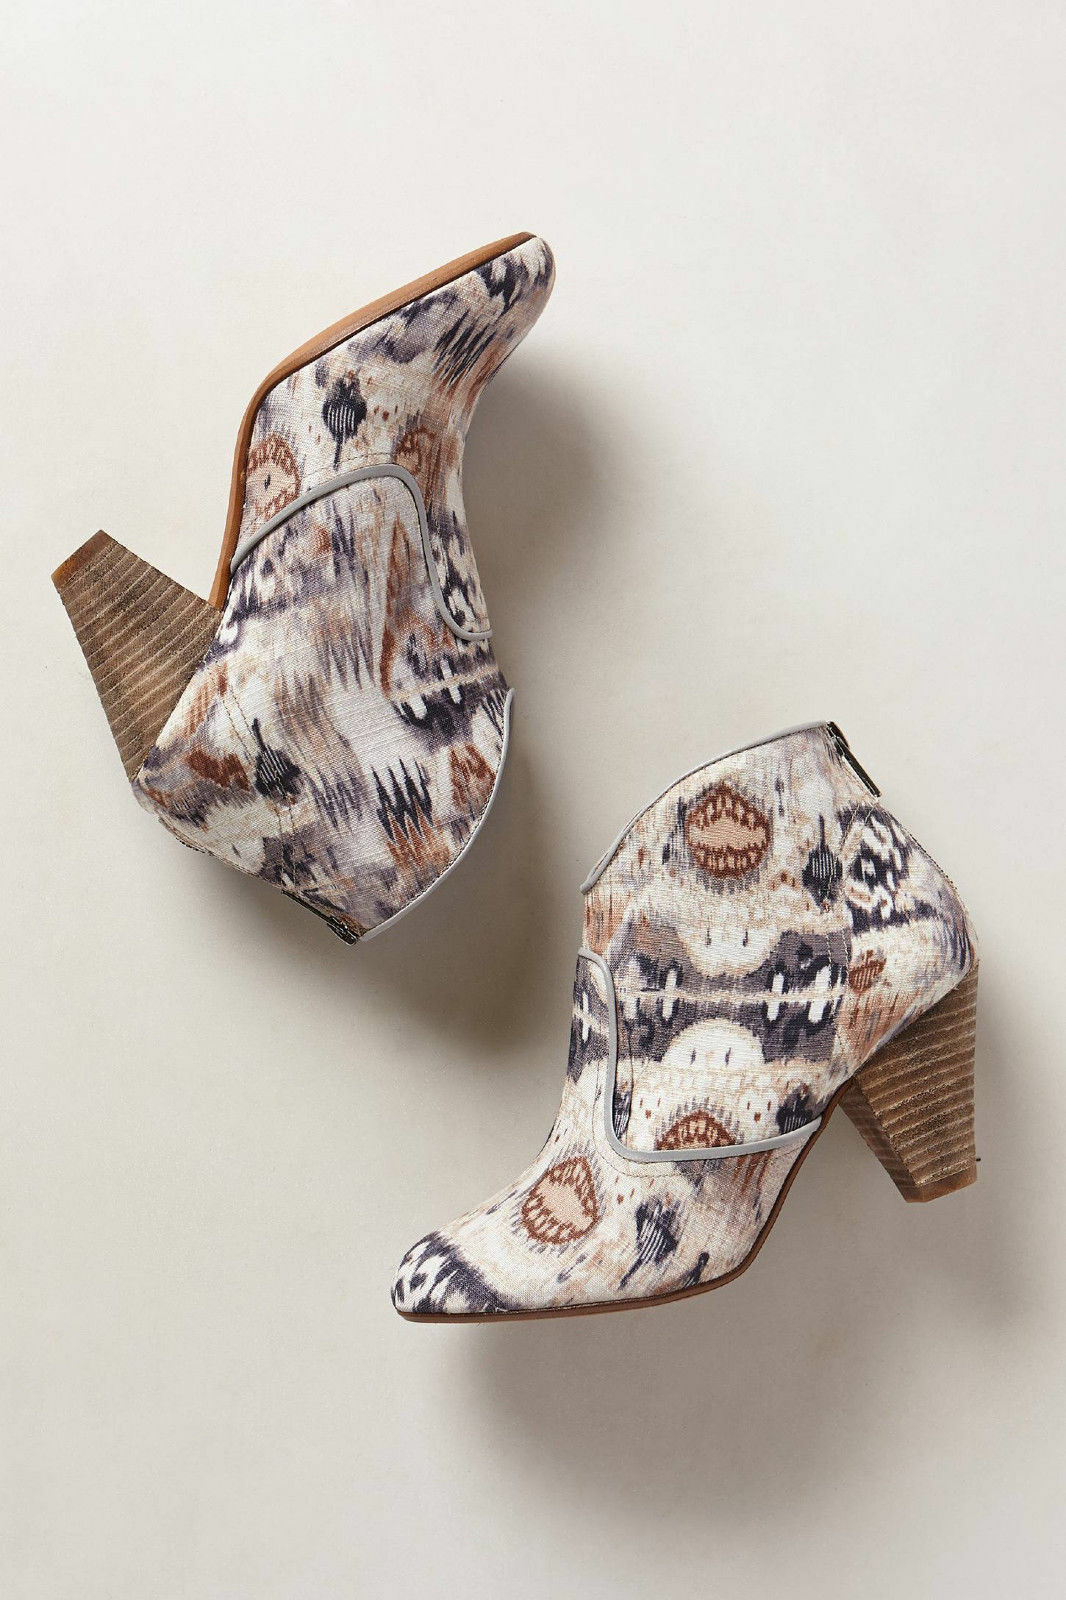 Anthropologie démarrageies Ankle bottes Highway Rambler Ikat Heels Heels Heels By 67 Collection 39 91b7a5